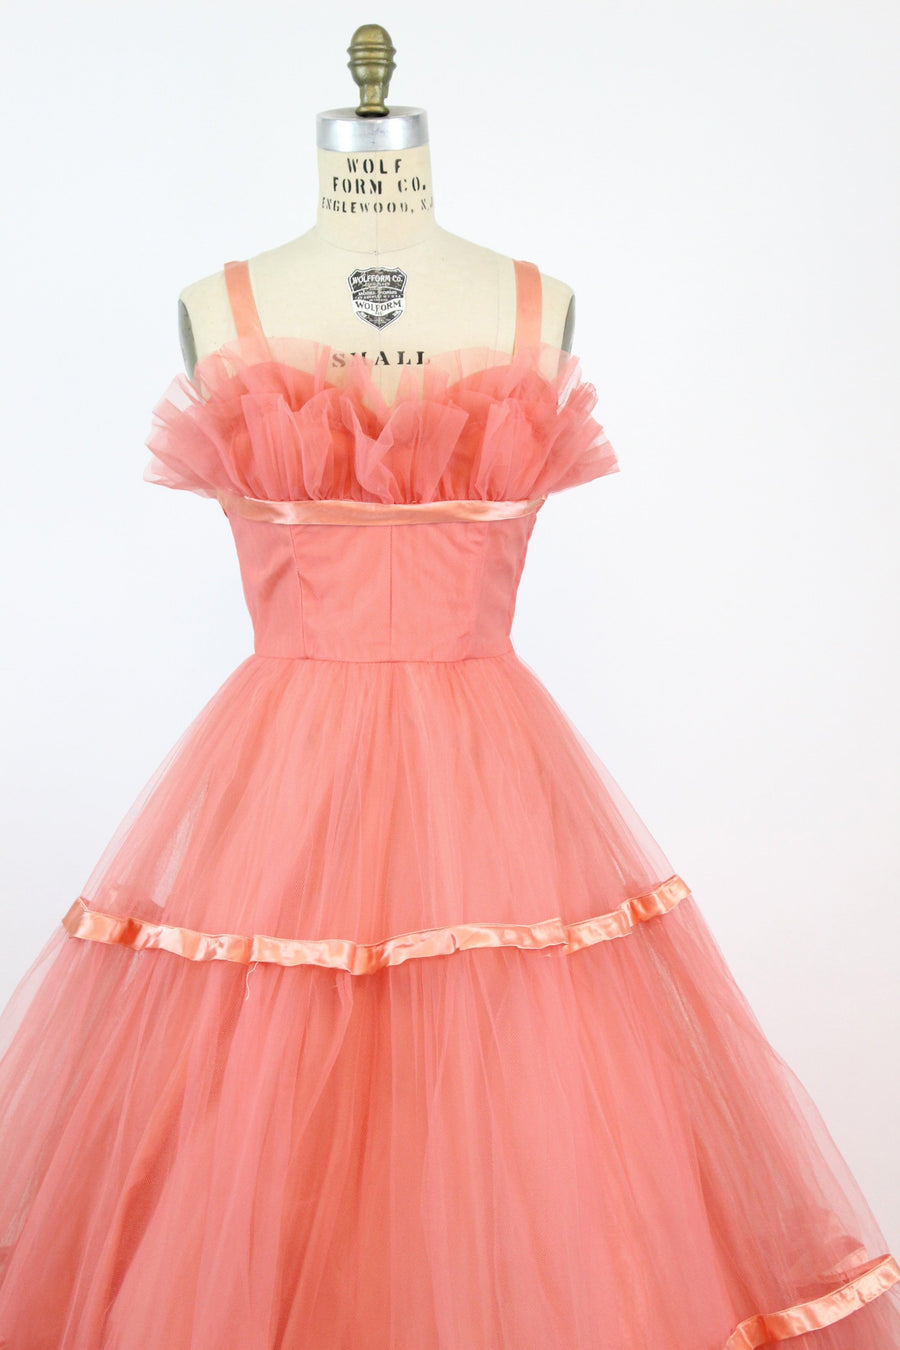 50s Emma Domb Gown XS  / 1950s Cupcake Tulle Dress / Coral Beauty Dress